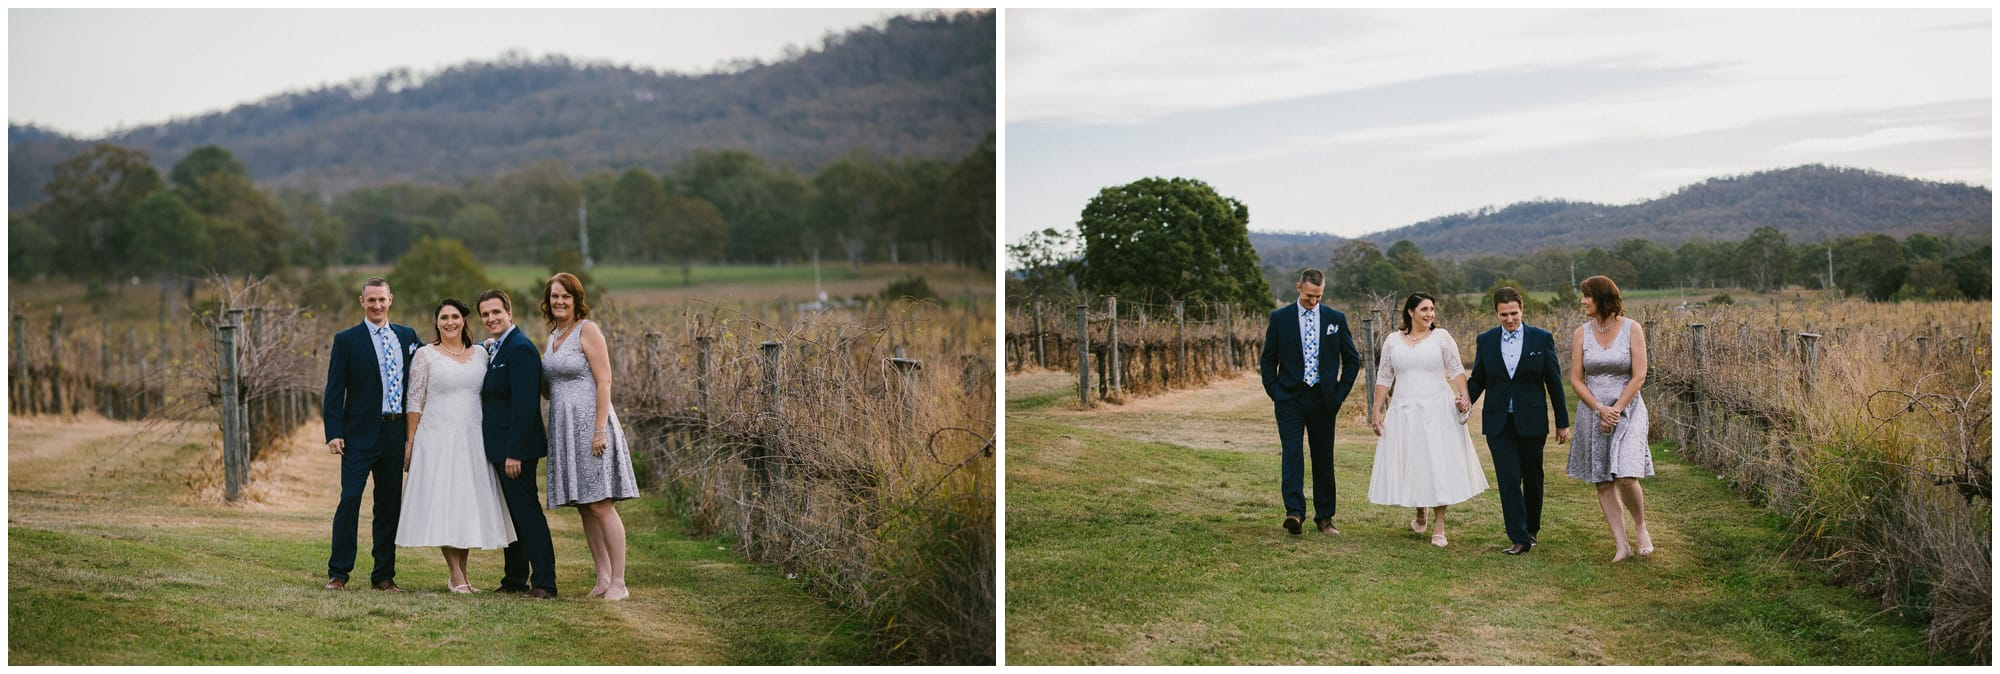 Albert River Winery wedding photographerer